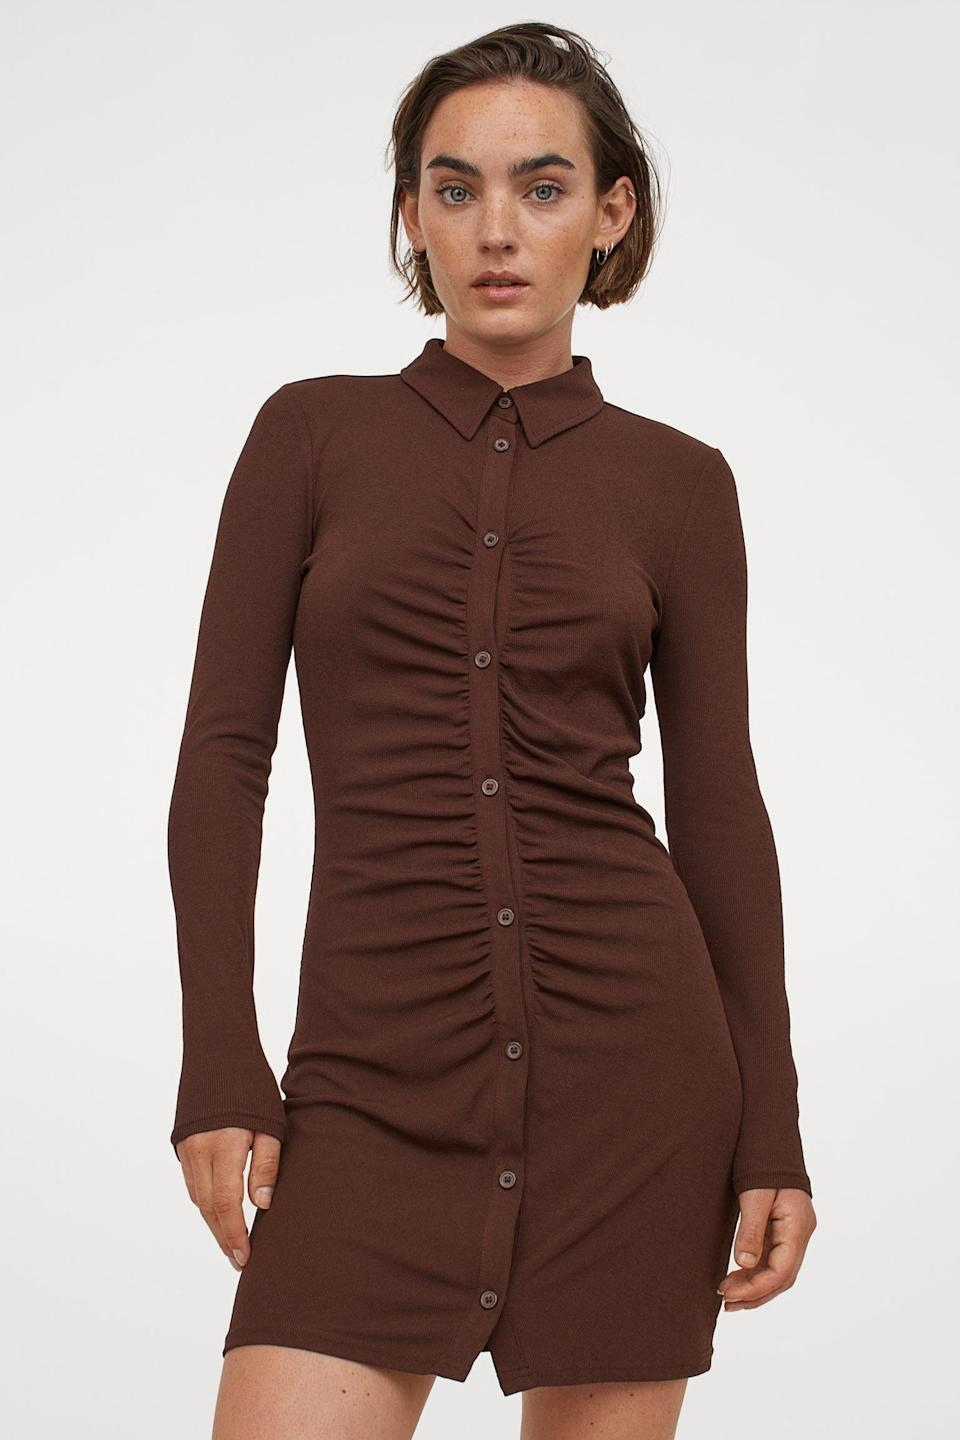 <p>The ruched detail of this <span>H&amp;M Jersey Shirt Dress</span> ($25) makes it look polished, while the silhouette feels approachable and fun.</p>